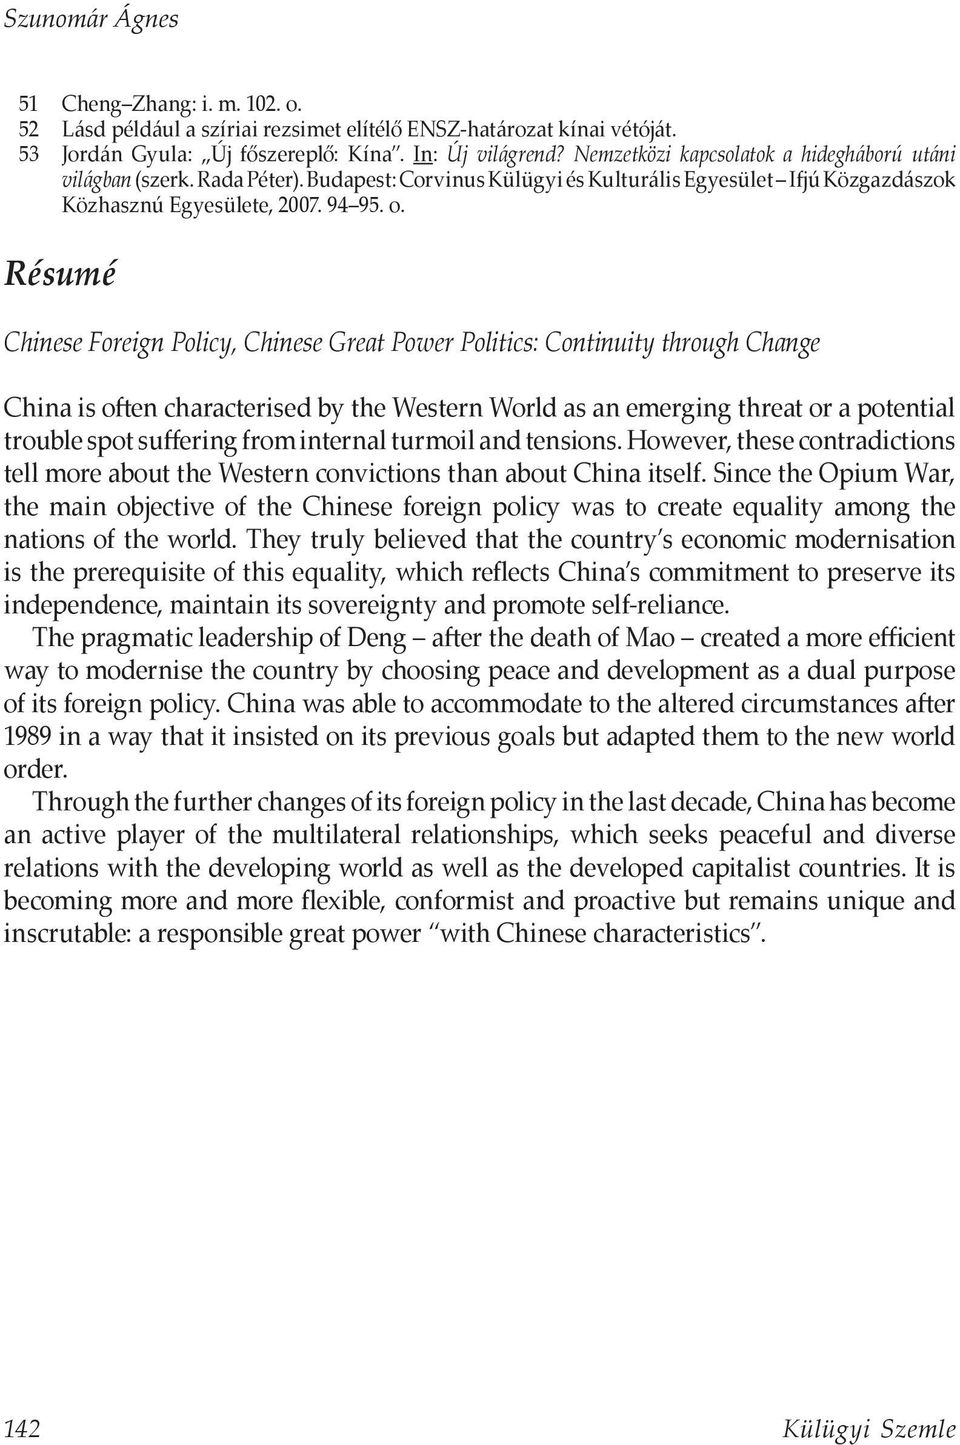 Résumé Chinese Foreign Policy, Chinese Great Power Politics: Continuity through Change China is often characterised by the Western World as an emerging threat or a potential trouble spot suffering